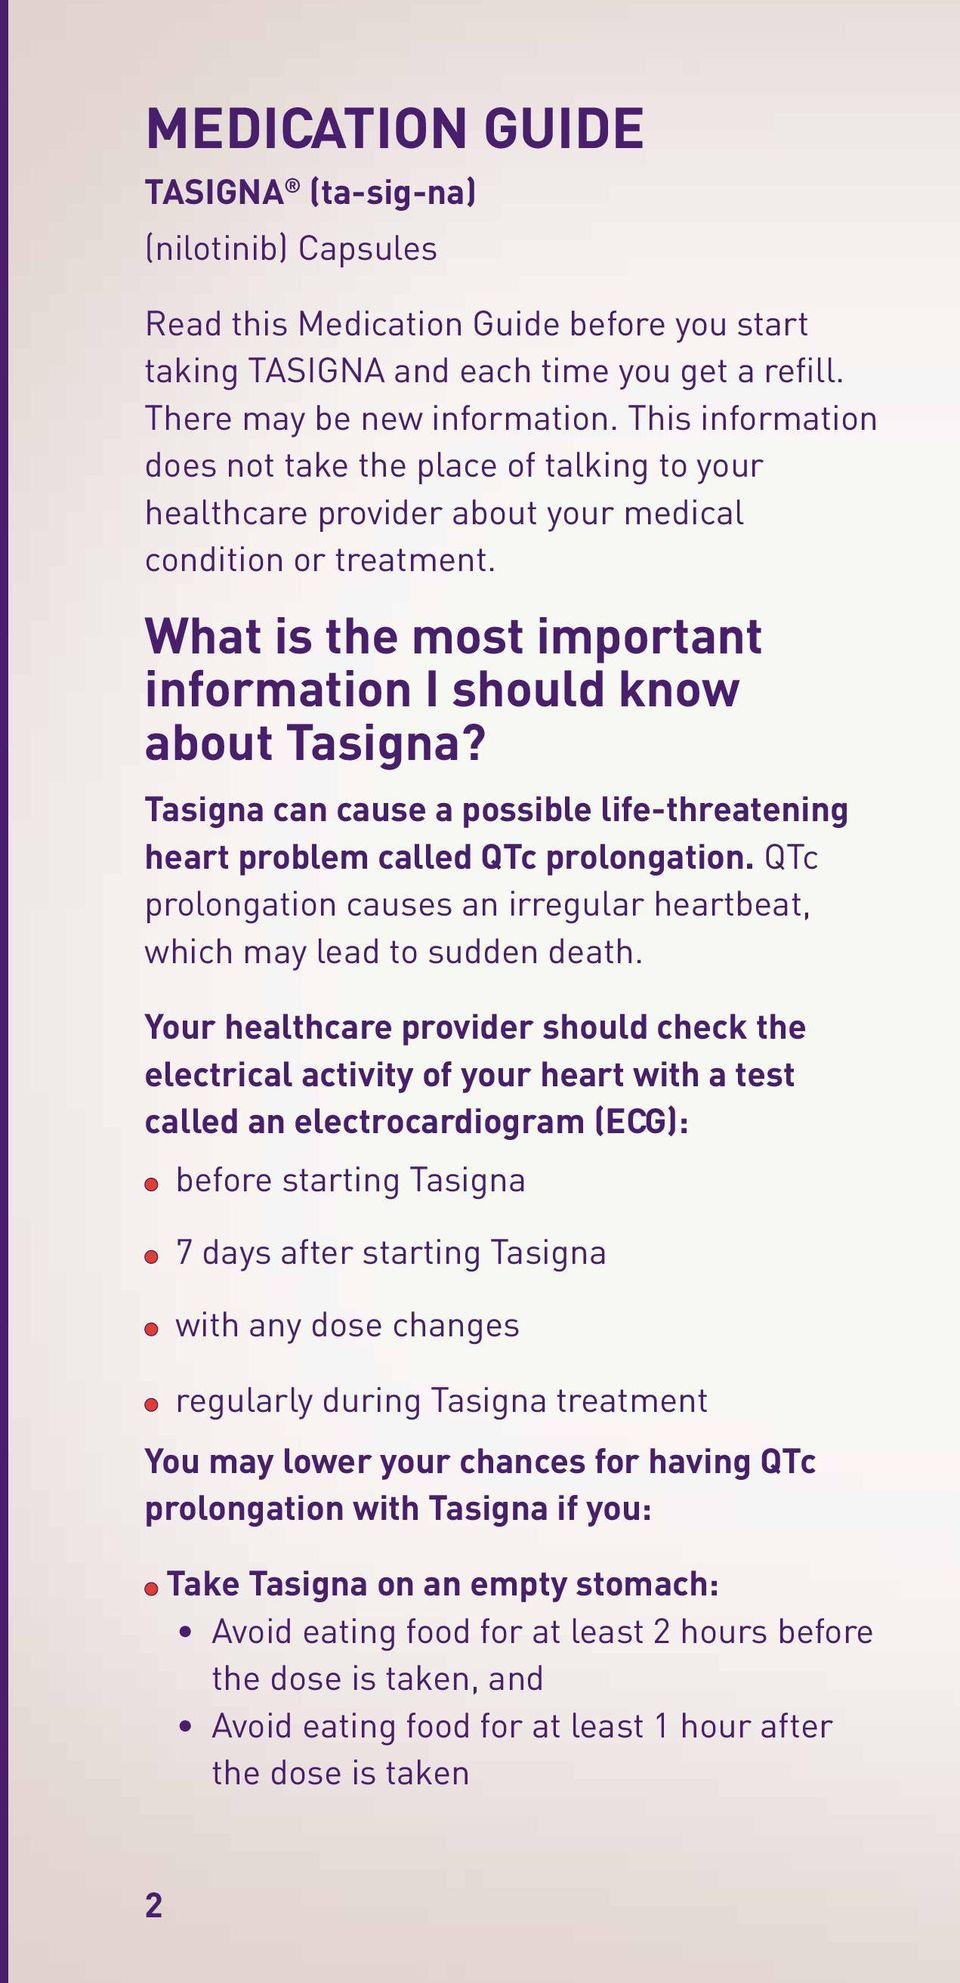 Tasigna can cause a possible life-threatening heart problem called QTc prolongation. QTc prolongation causes an irregular heartbeat, which may lead to sudden death.